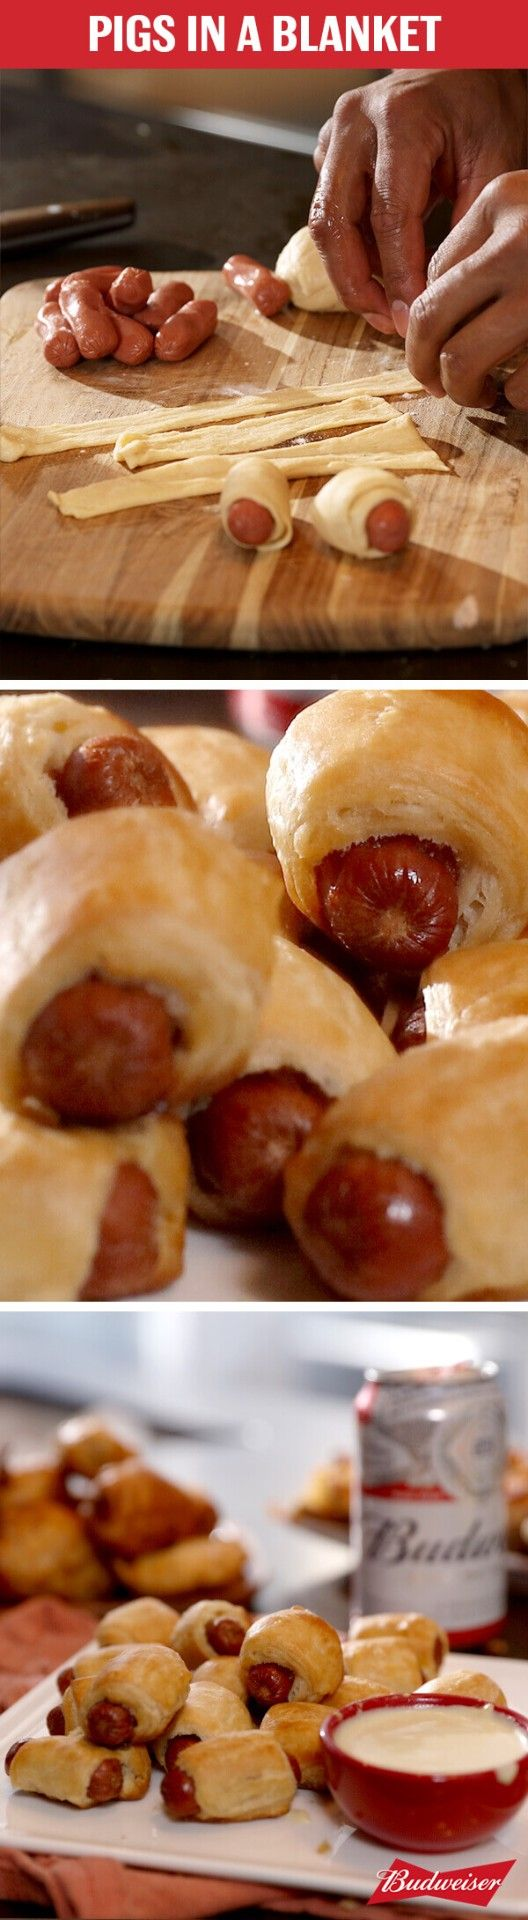 Nothing like an ice cold Budweiser and a hot dog at a ball game. Check out our bite-sized Pigs-in-a-Blanket and bring the stadium food home.